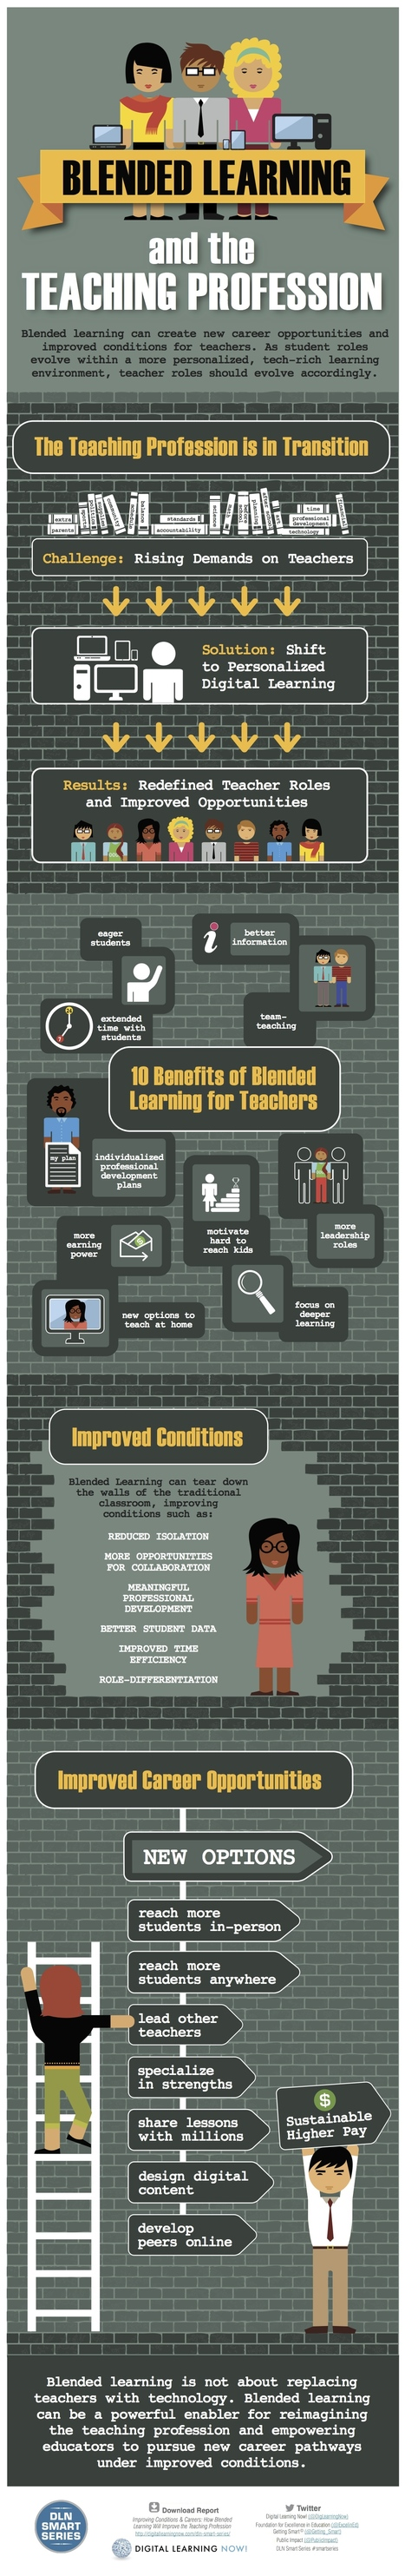 Blended Learning & The Teaching Profession [Infographic] | Pedalogica: educación y TIC | Scoop.it